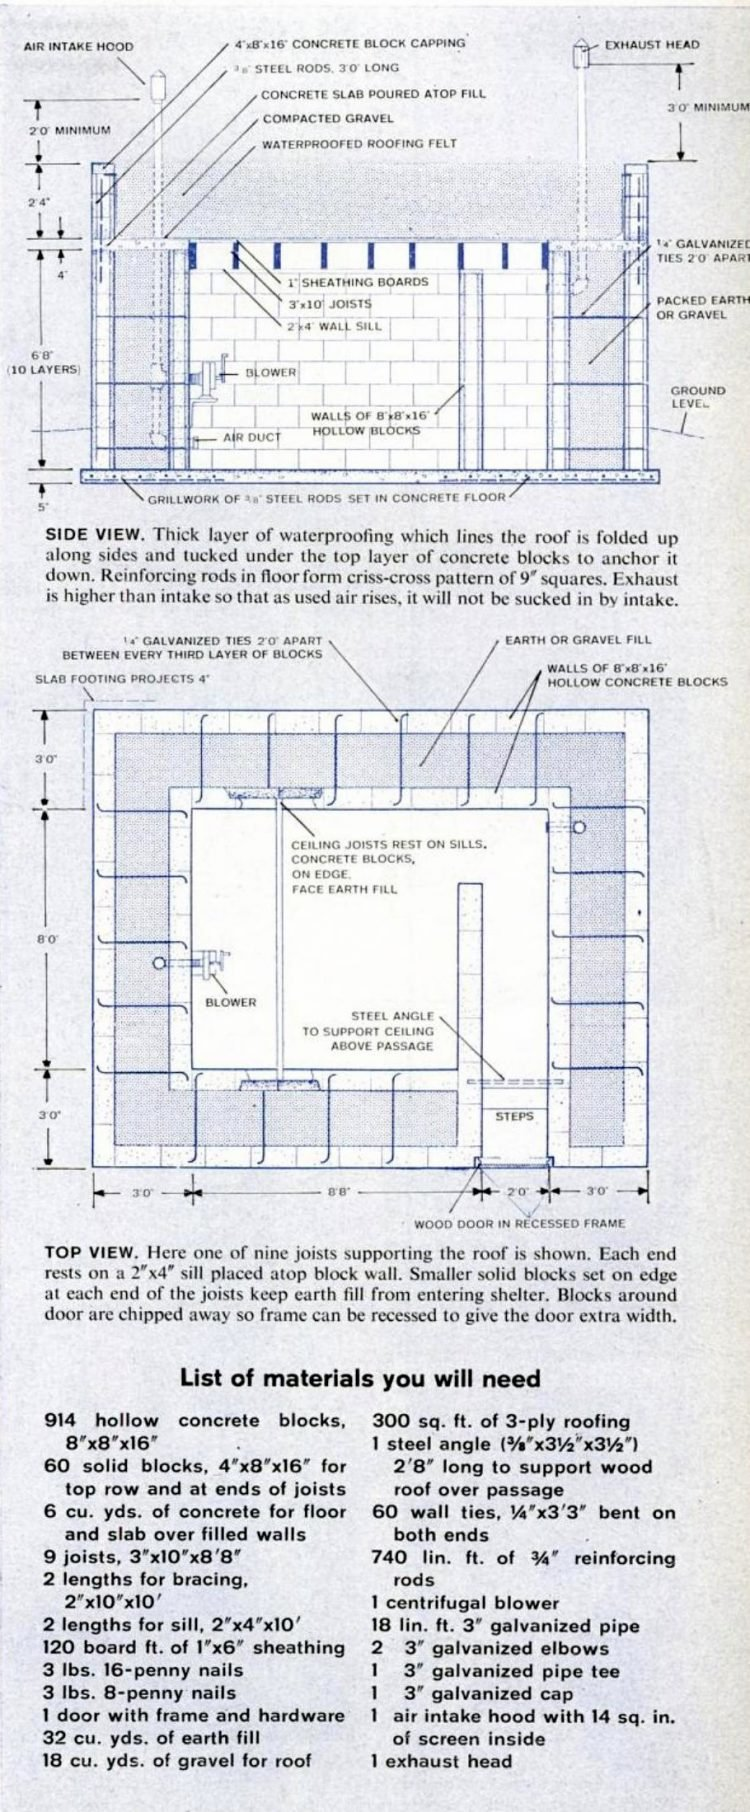 Vintage bomb shelter plans and materials list from 1961